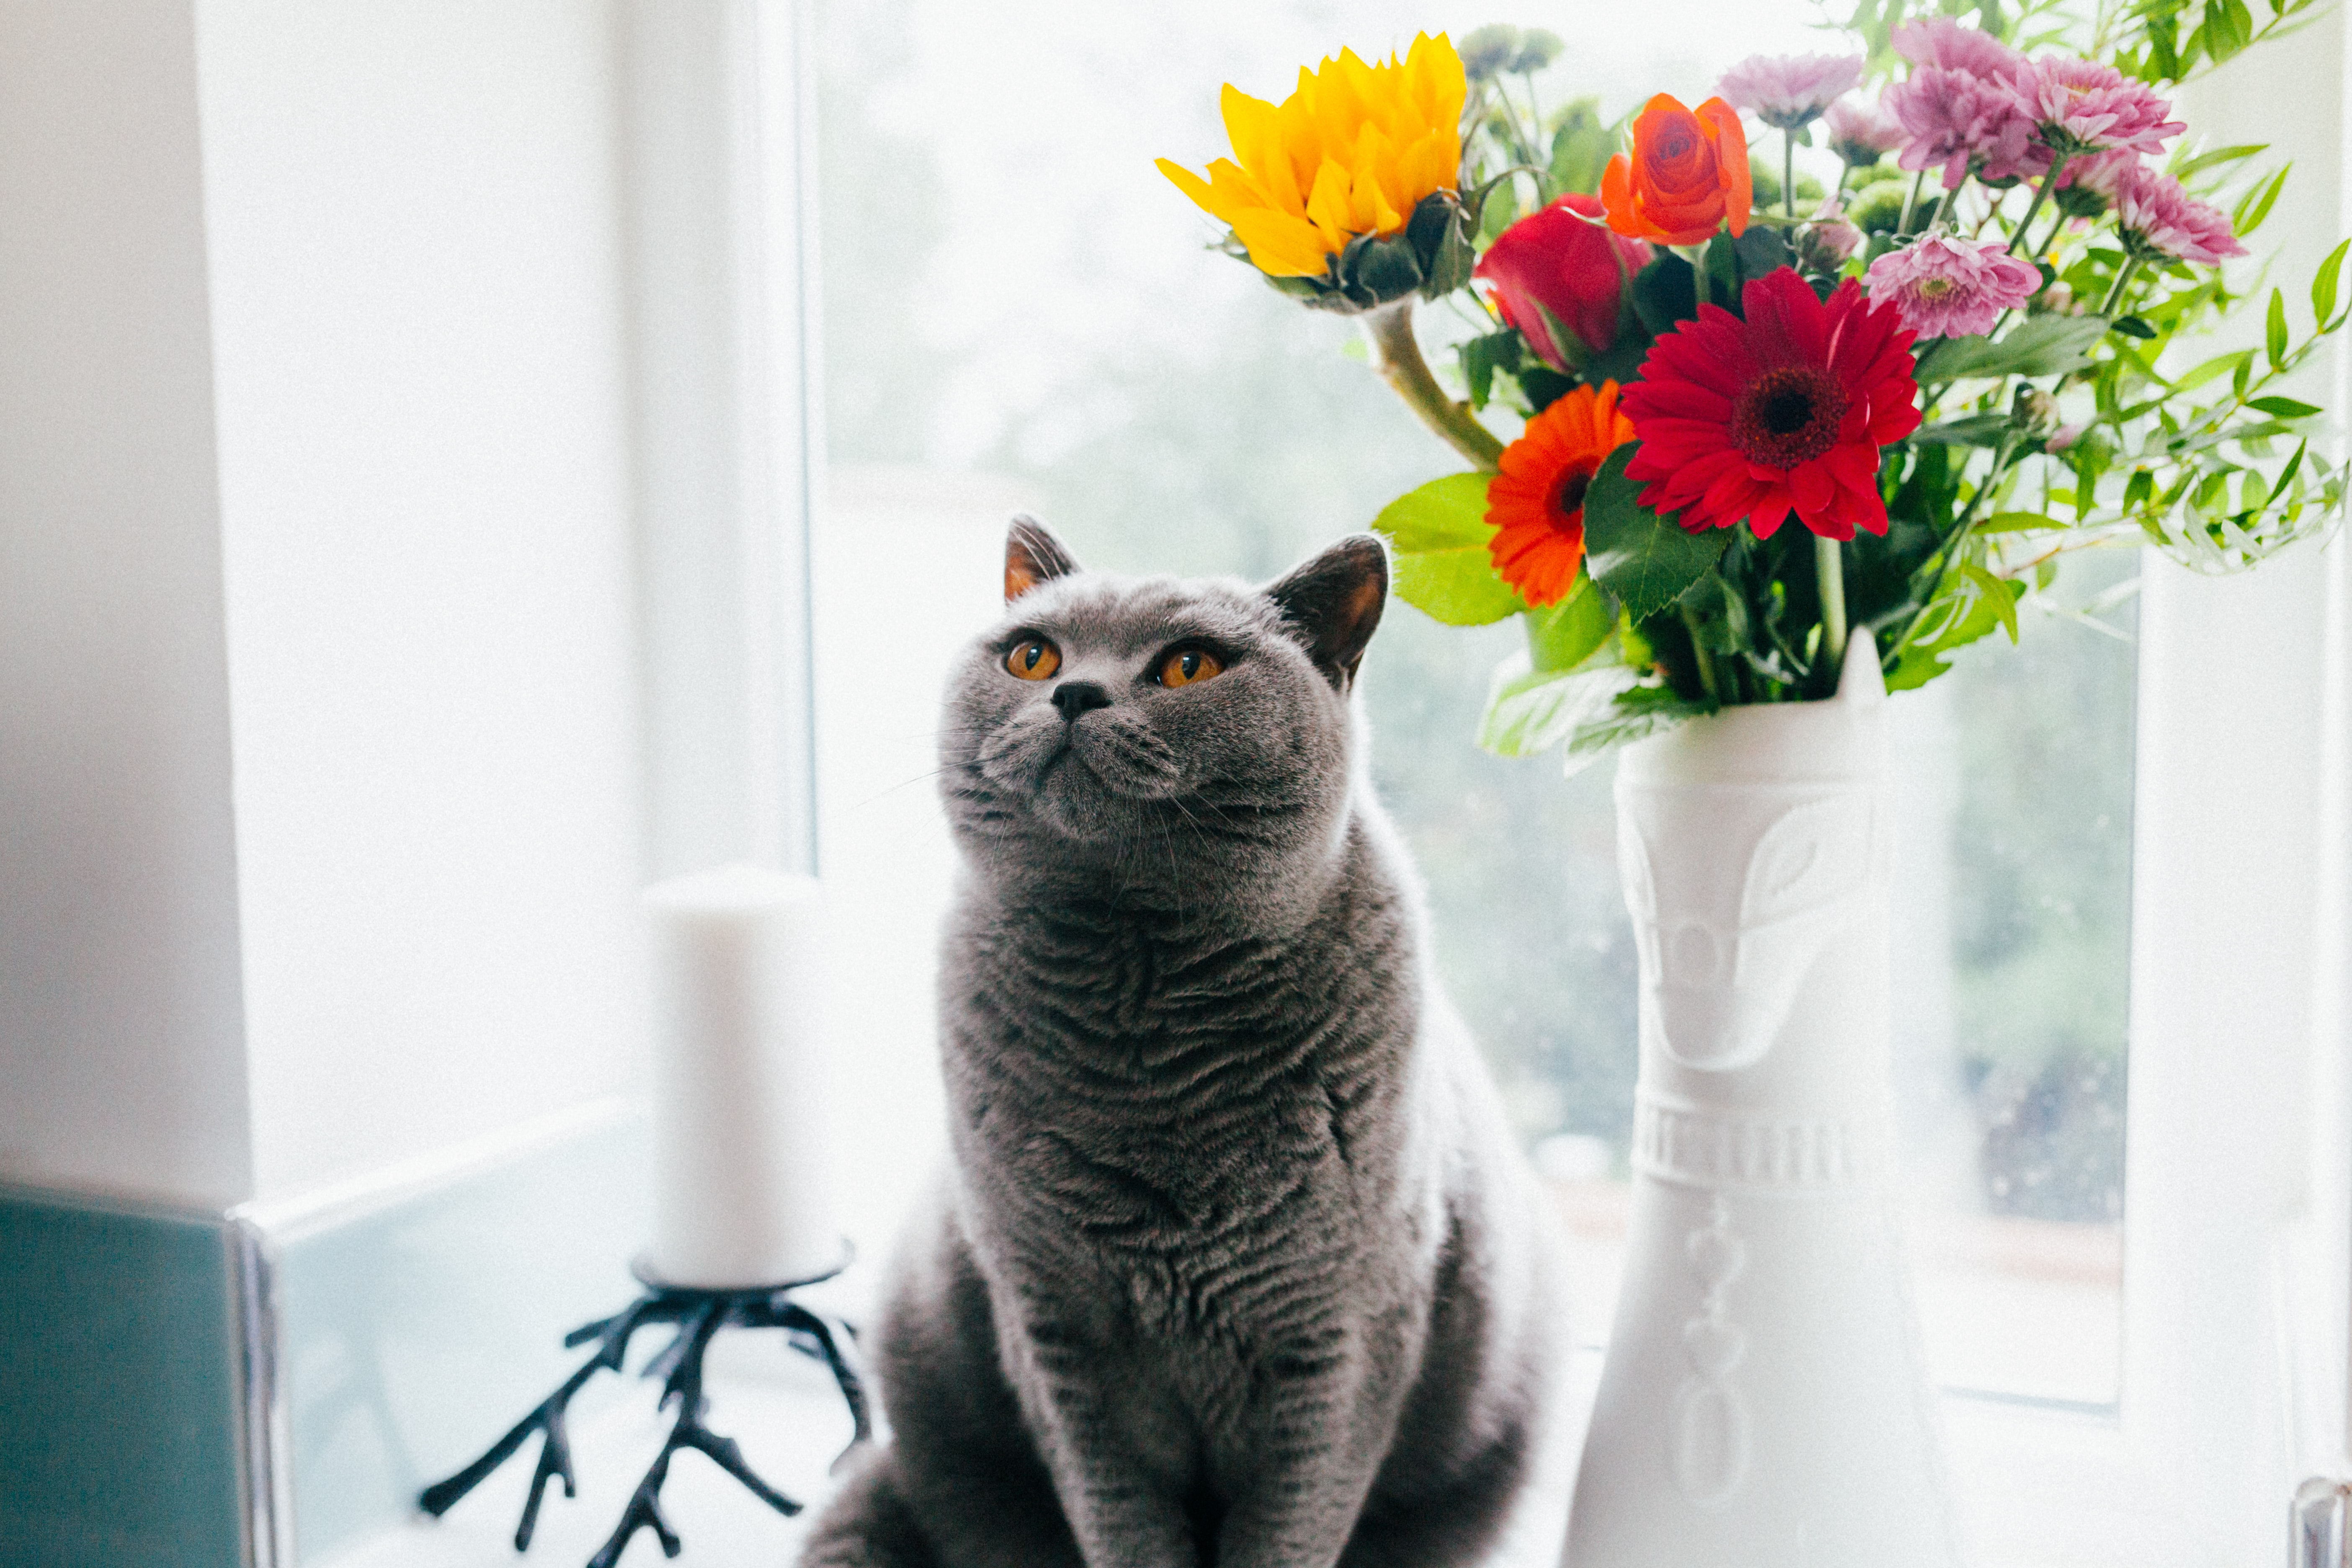 A cat sitting on a windowsill next to a vase with colorful flowers and looking up